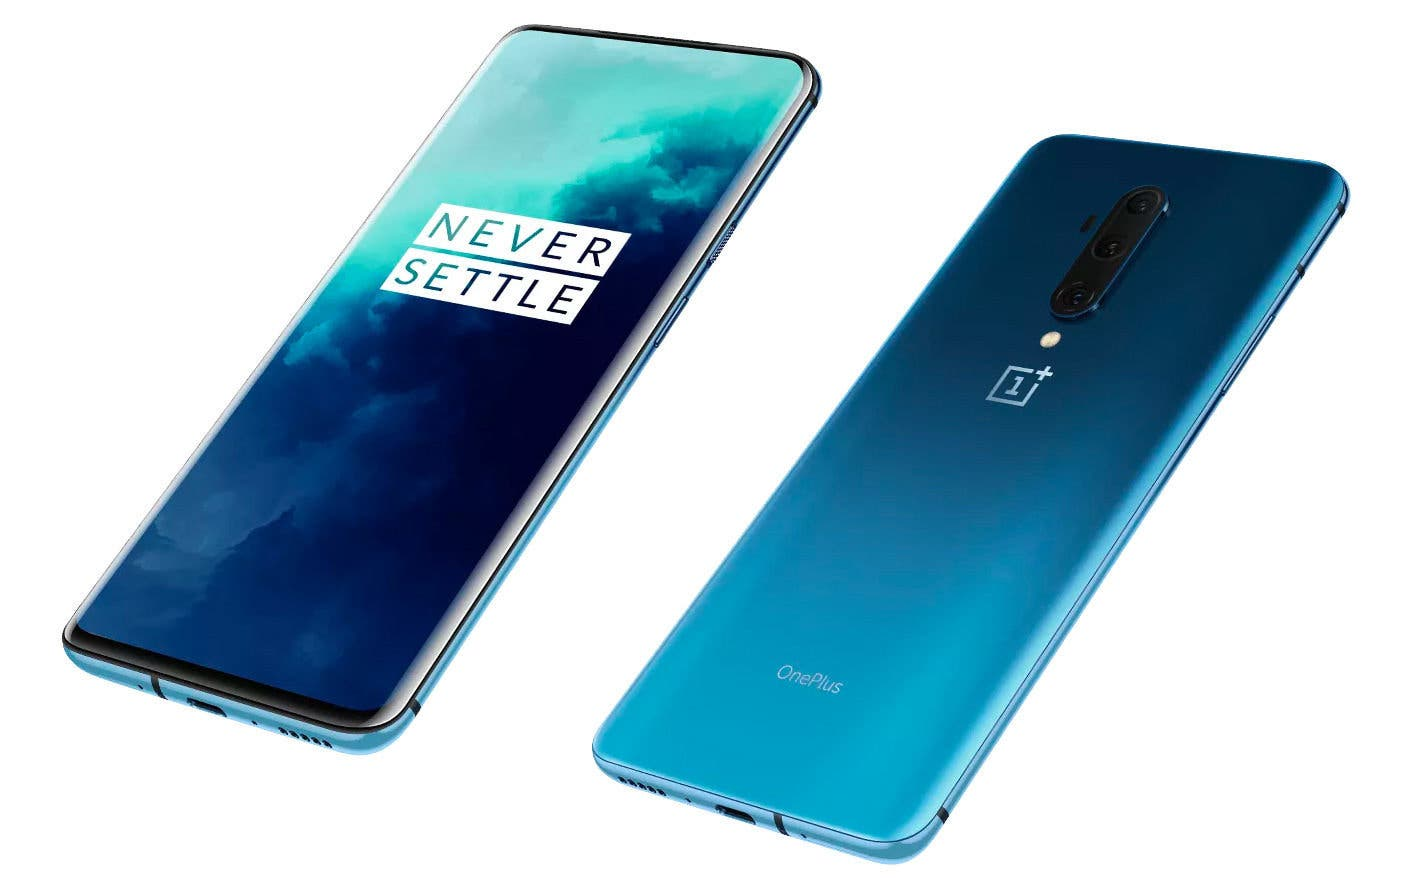 OnePlus 8 Pro Might Feature A Display With 120Hz Refresh Rate